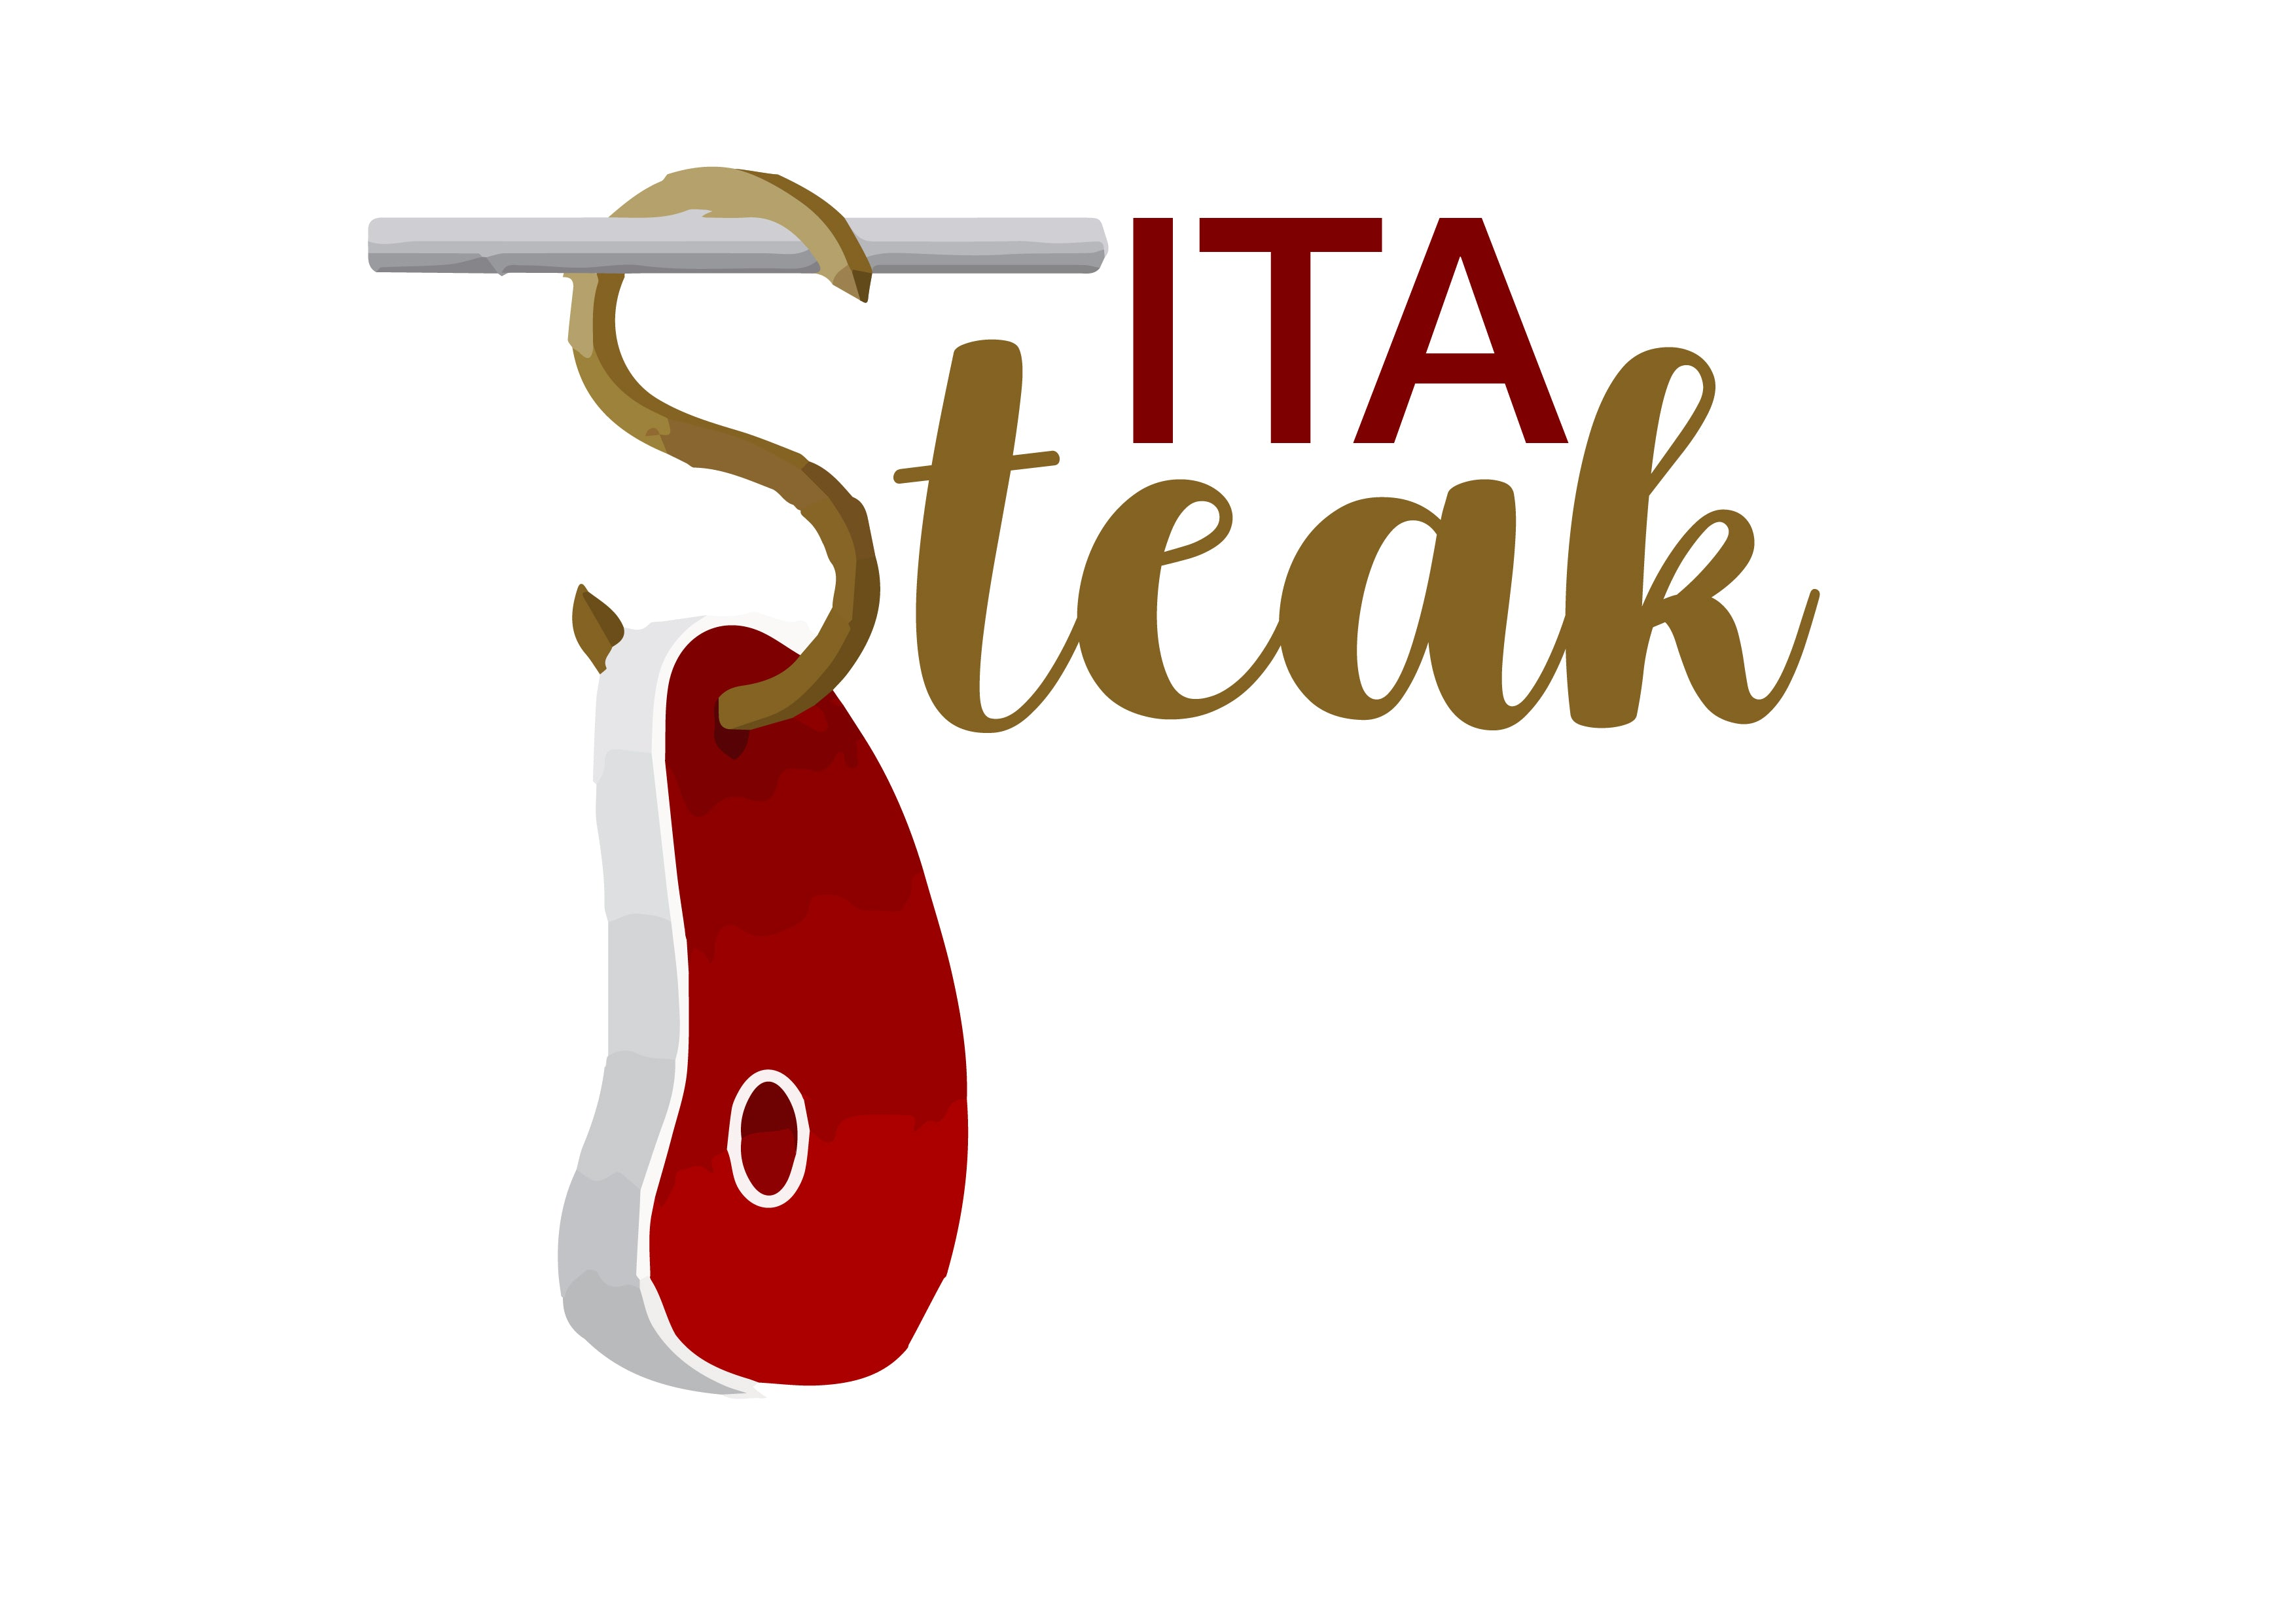 Costata ITASteak